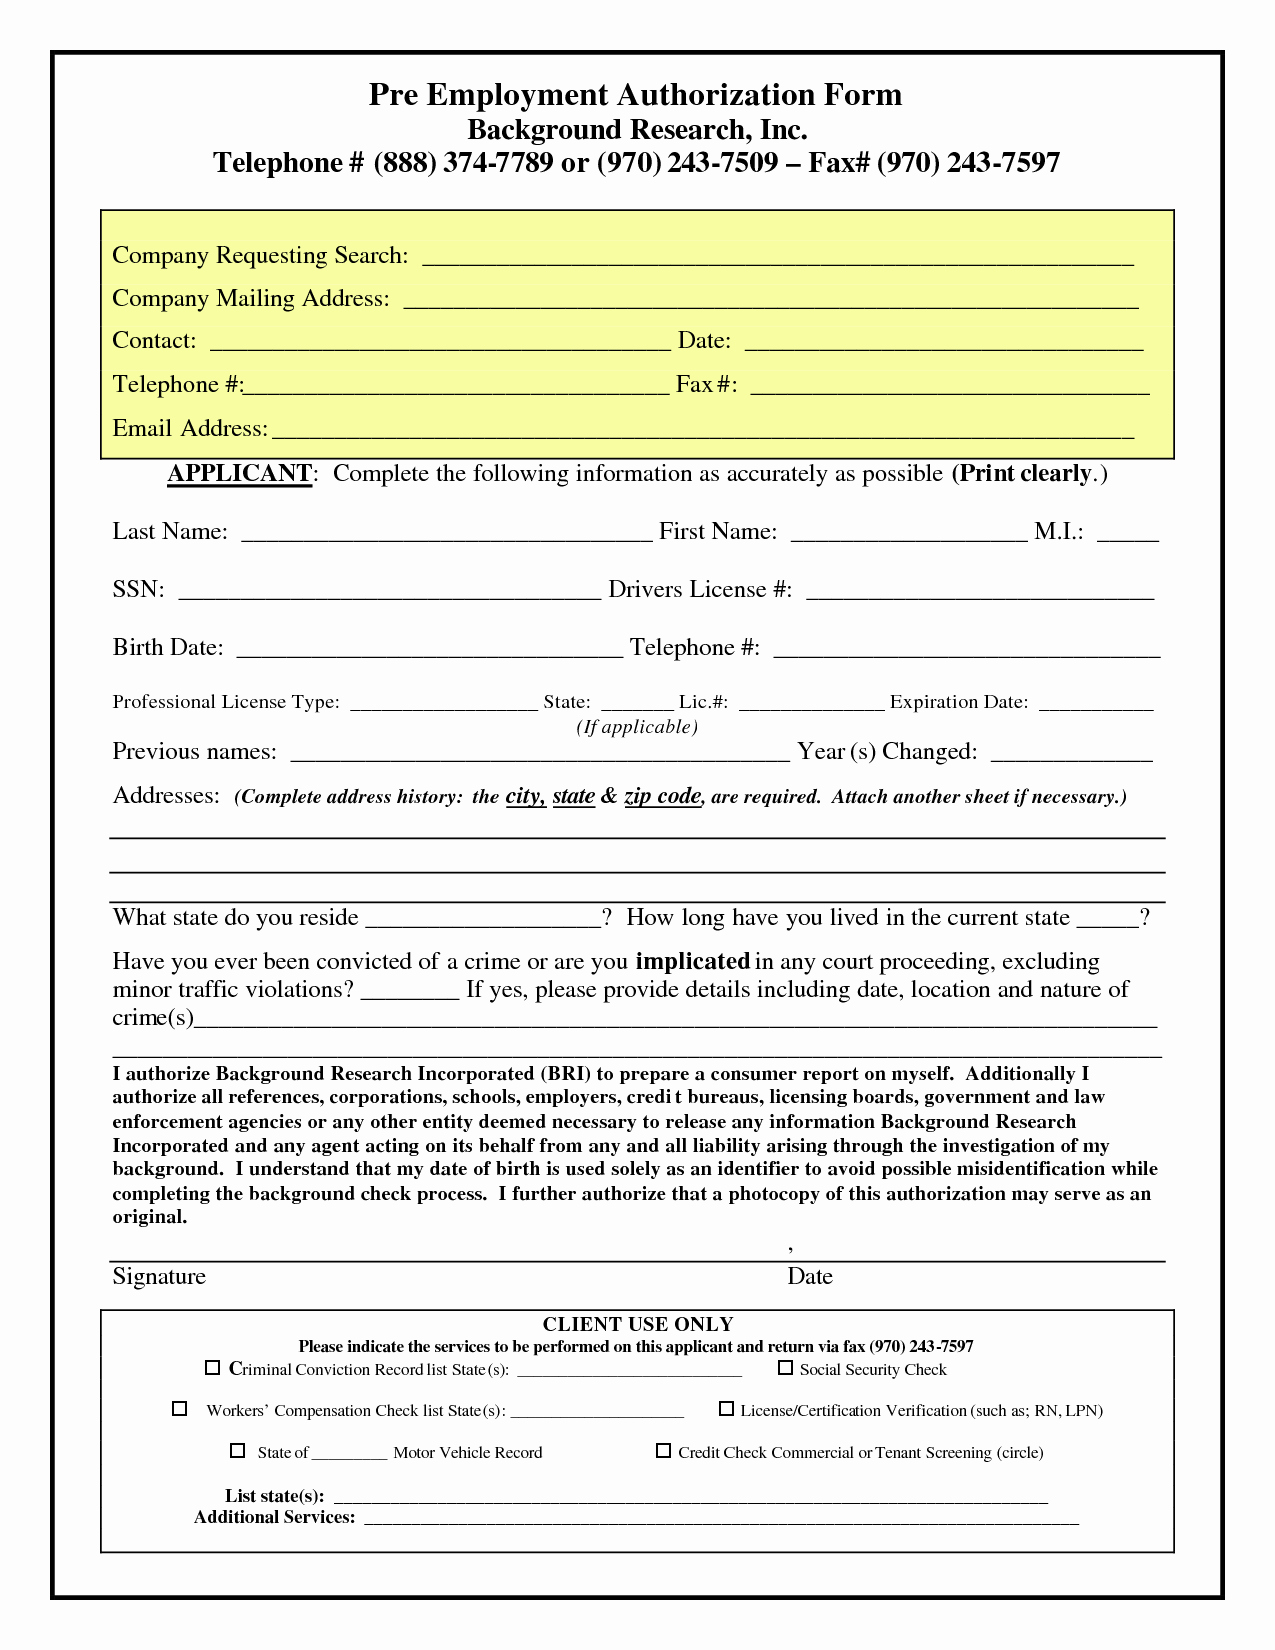 Background Check Authorization form Template Beautiful 26 Of Pre Employment Background Check Application